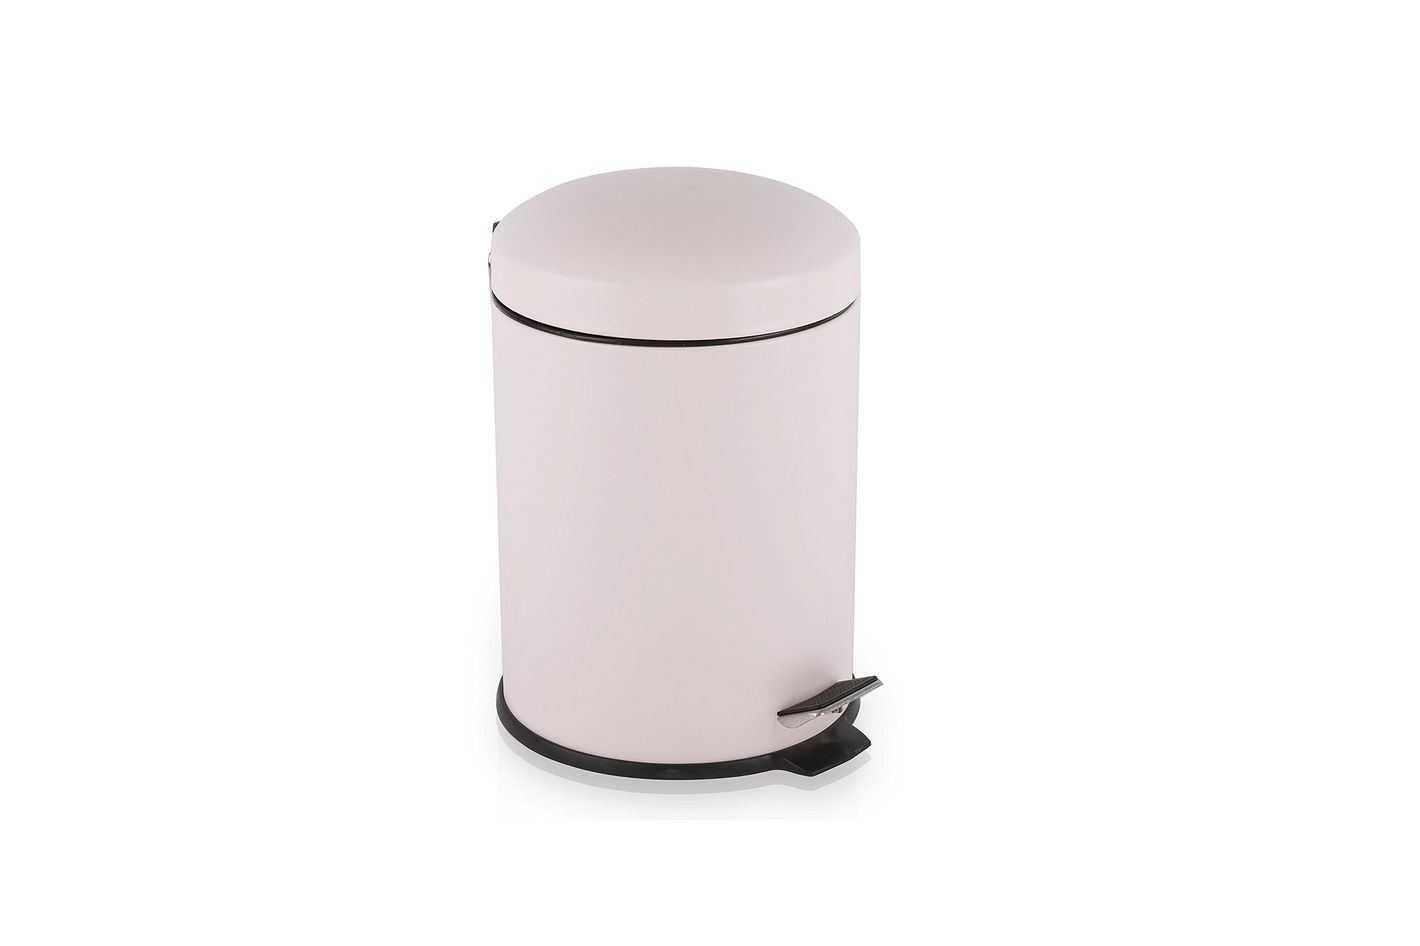 A Pastel Pink Bin Is A Sophisticated Upgrade Of Boring Stainless Steel